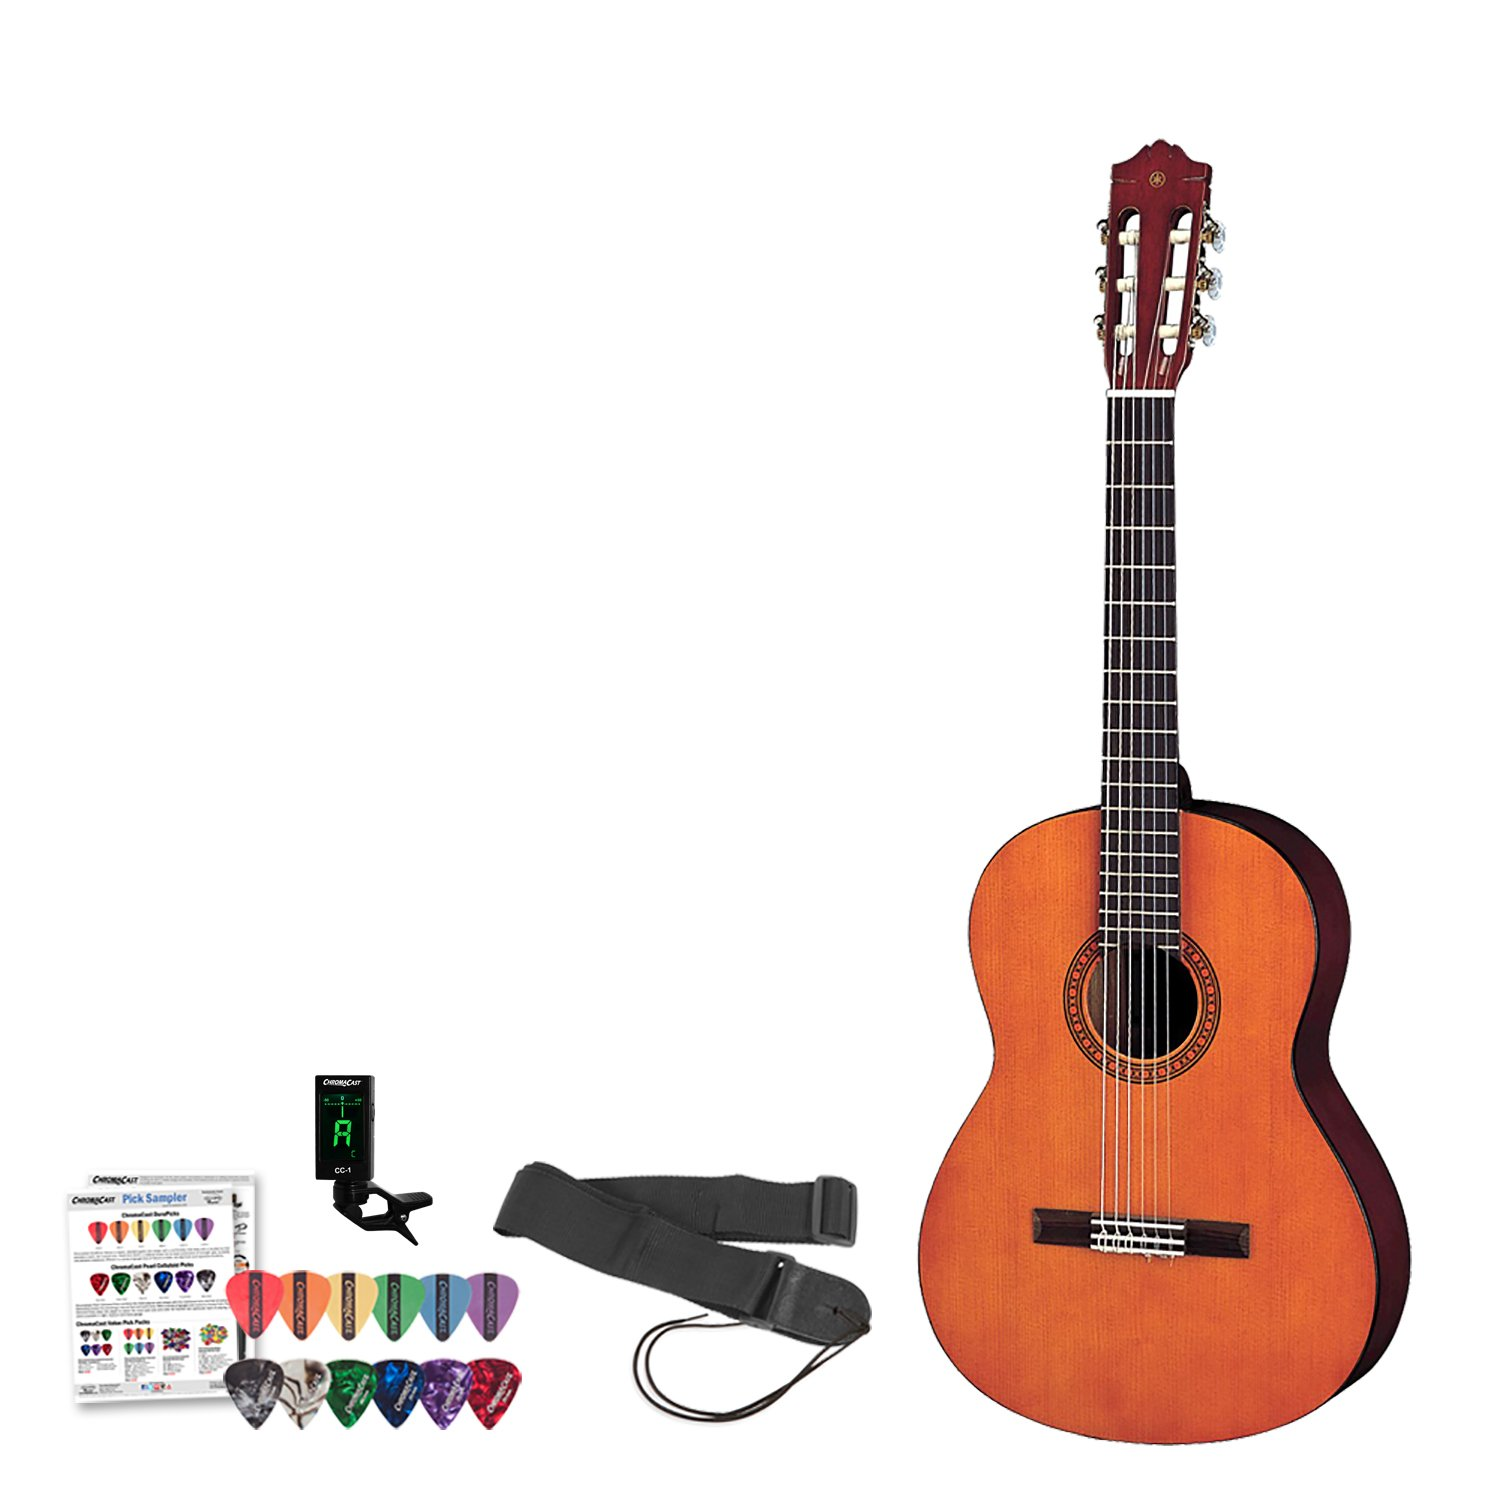 Yamaha CGS102A 1/2 Size Classical Guitar Kit - Includes: Tuner, Instructional DVD, Strap & ChromaCast Pick Sampler